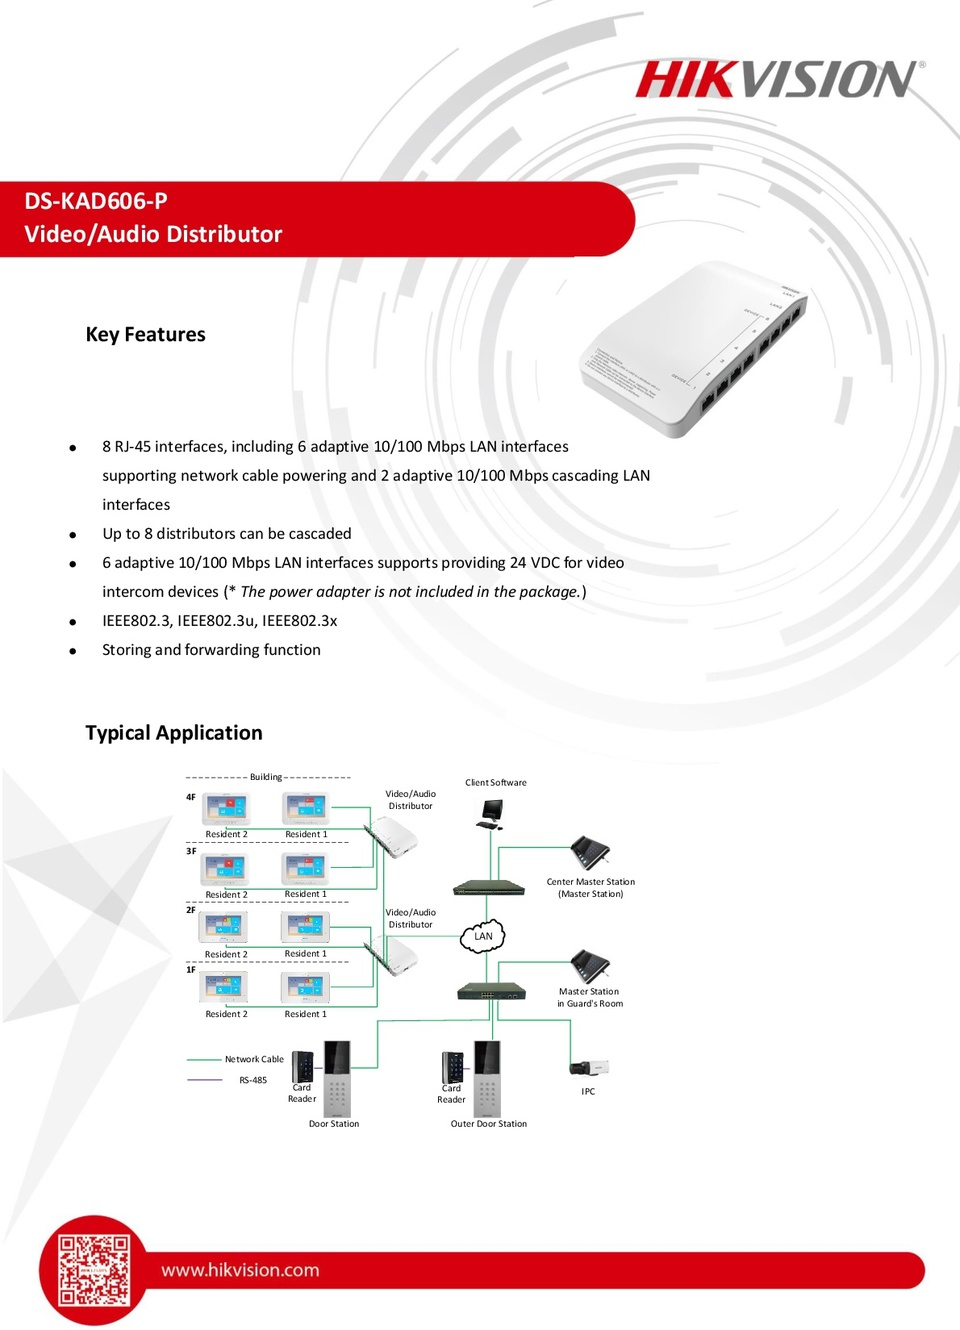 Hikvision DS-KAD606-P 8 RJ-45 interfaces, including 6 adaptive 10/100 Mbps LAN 0